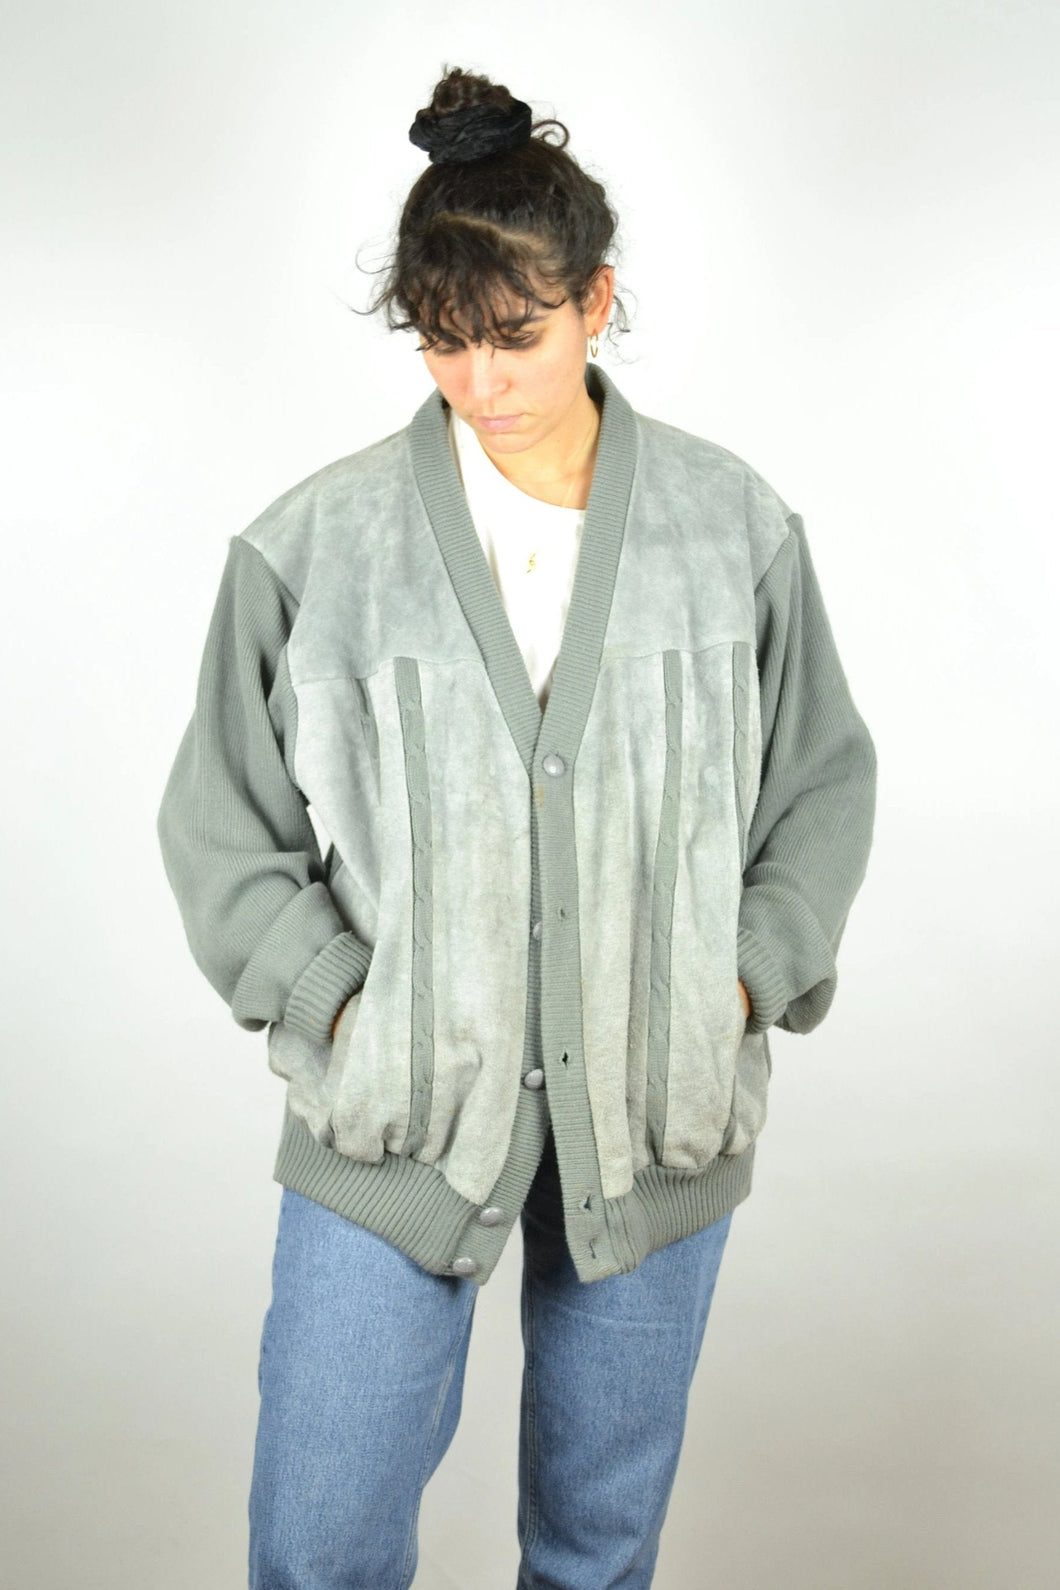 Suede Wool Bomber Jacket Vintage 80s Grey Large L XL